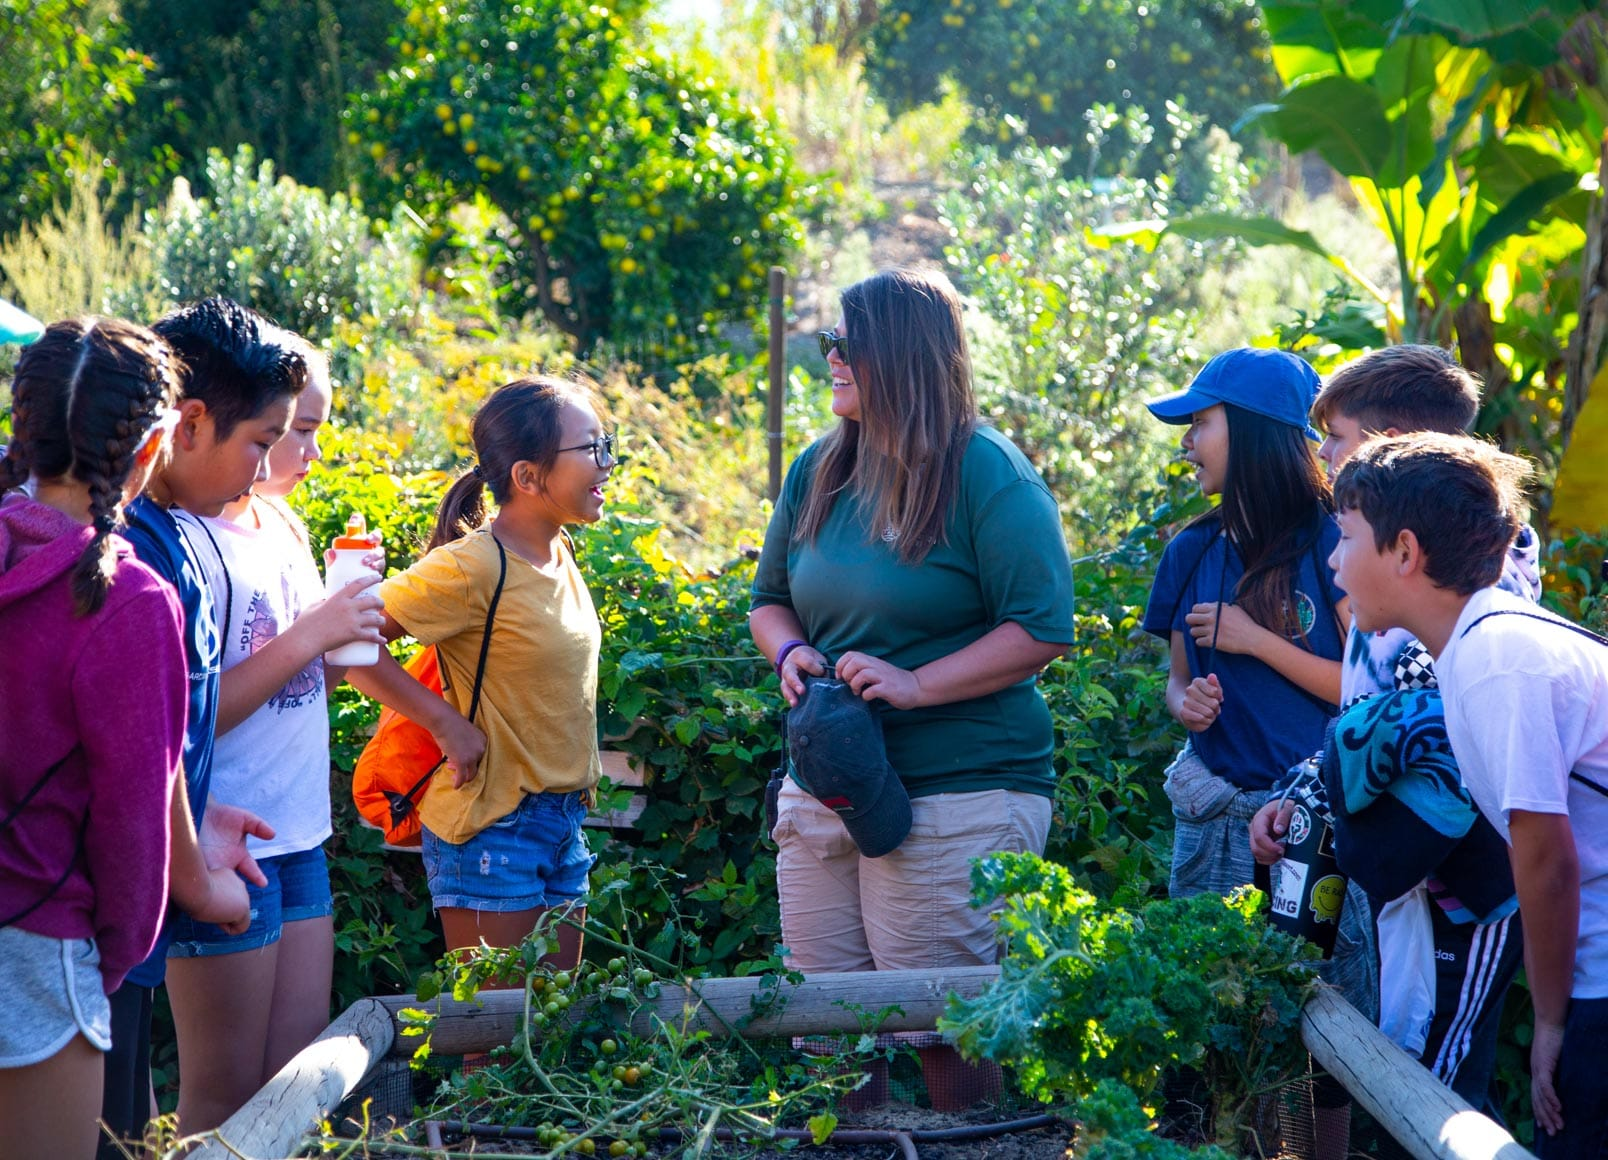 School group learning about the garden from Irvine Ranch staff